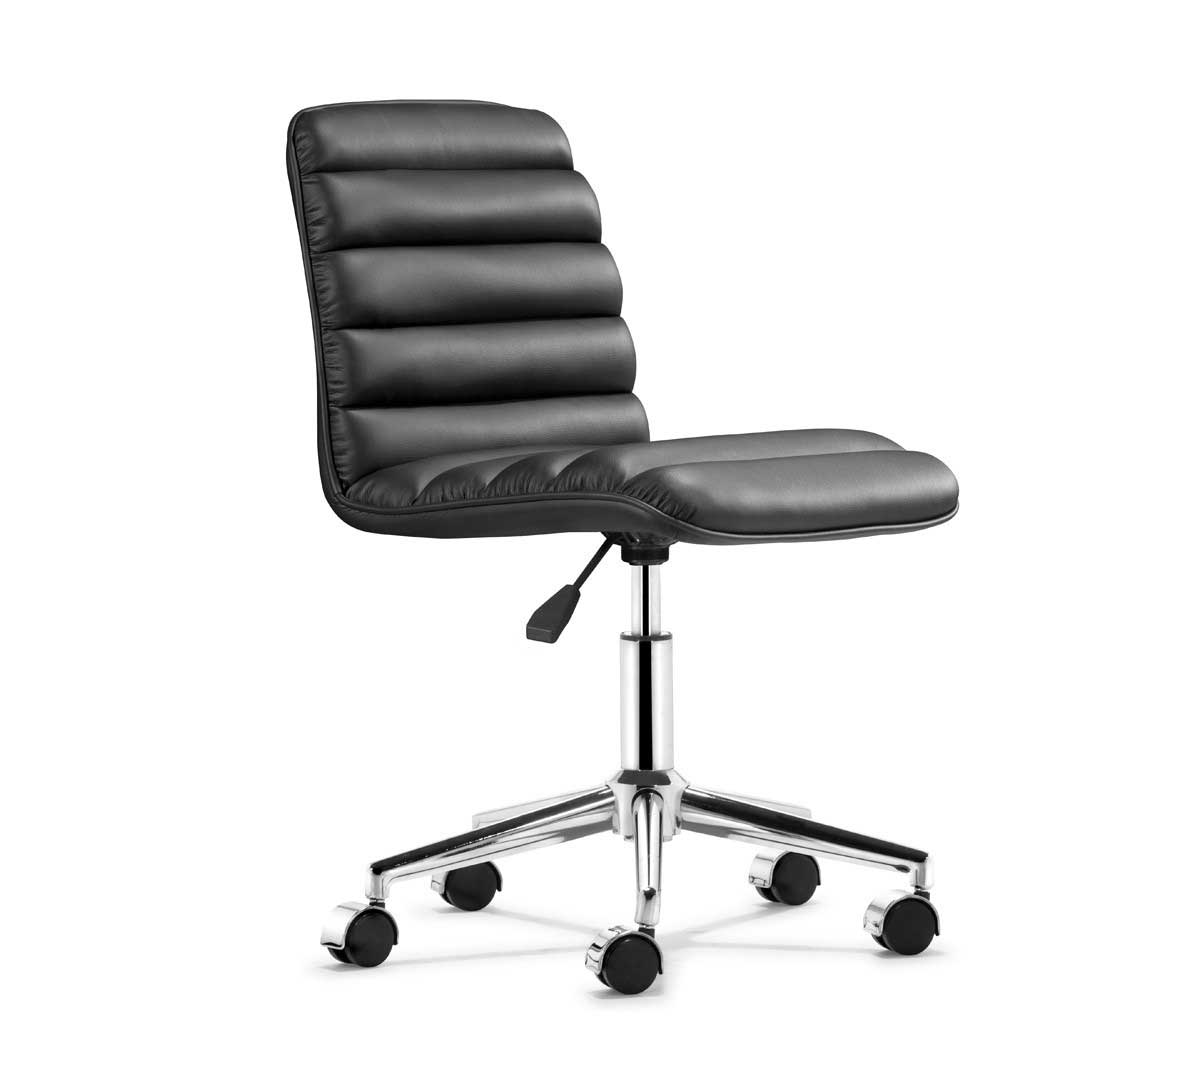 Zuo Modern Admire Stylish Adjustable Office Chair